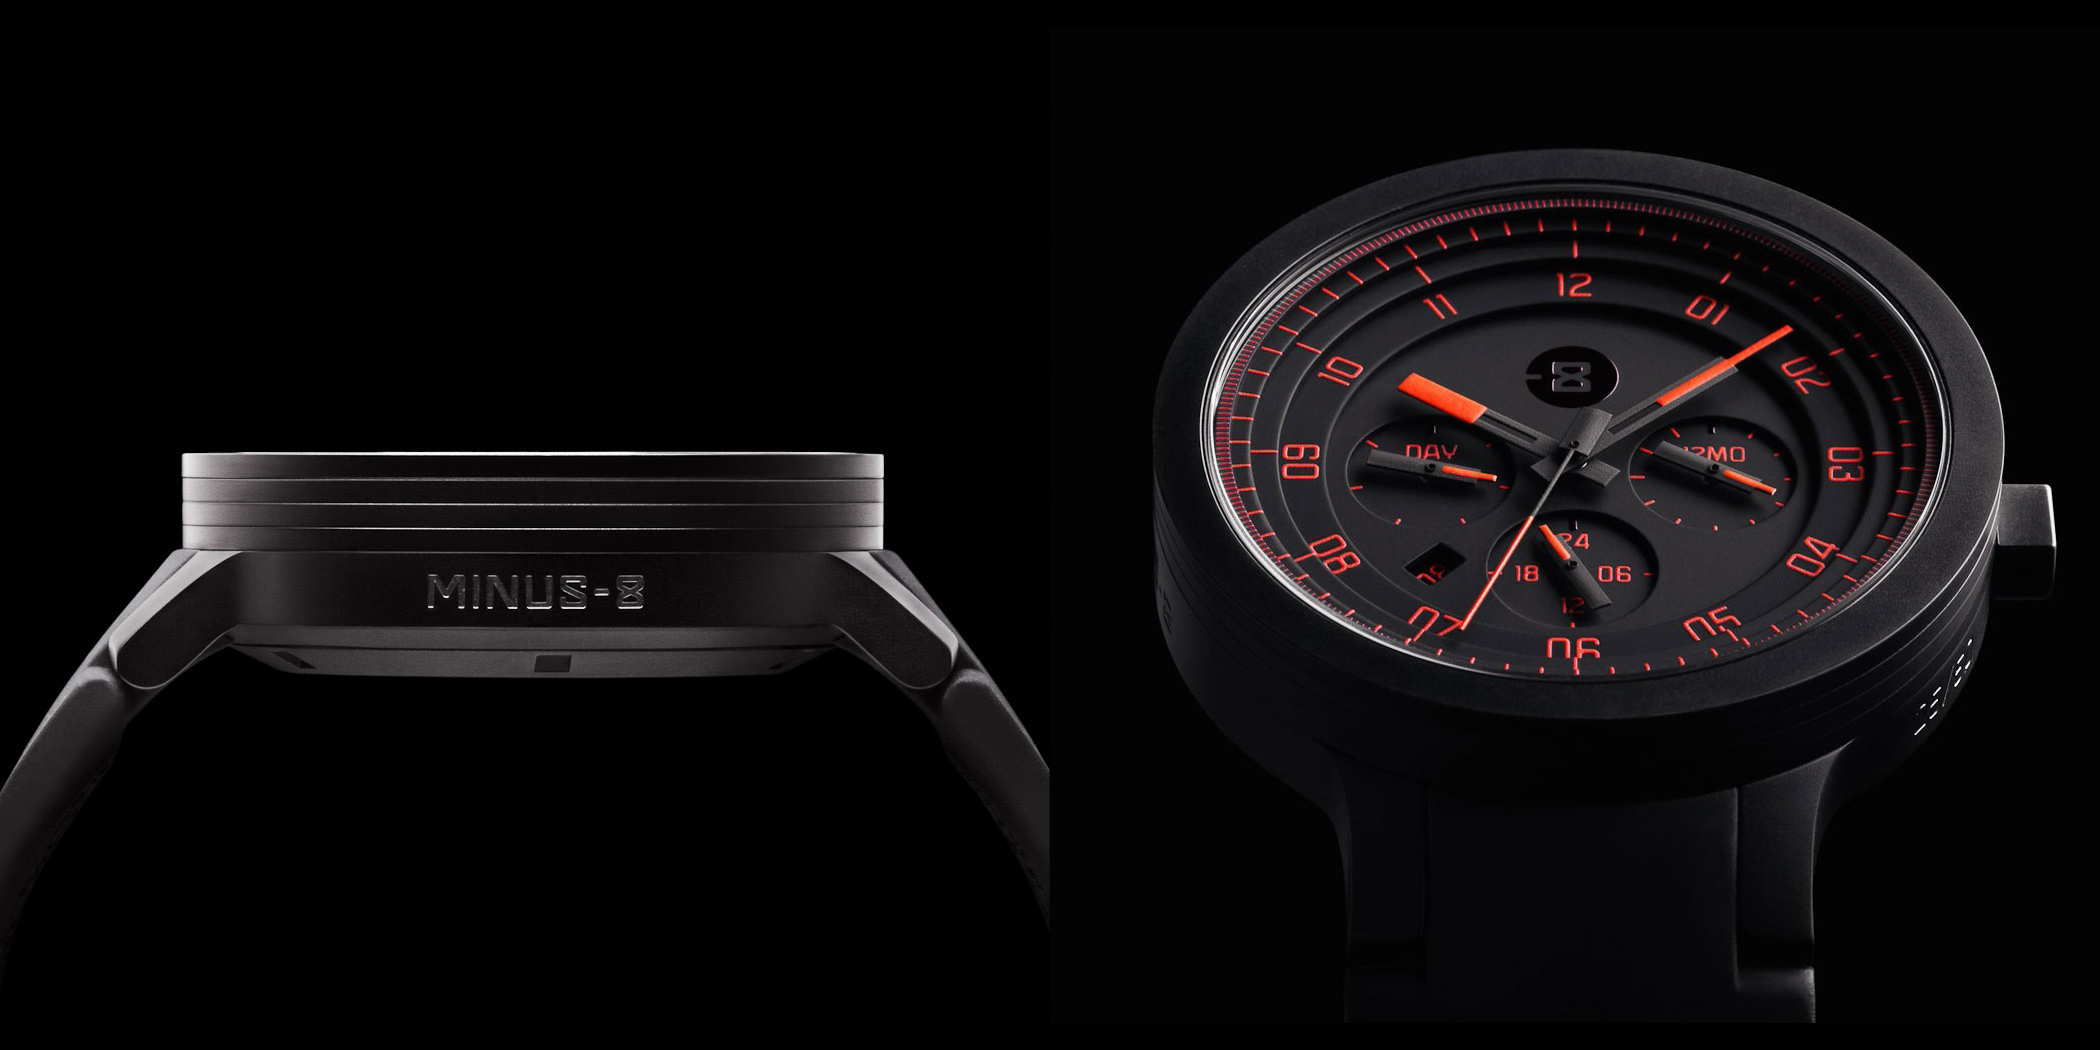 Minus 8 Watches - Astro Design/Minus 8